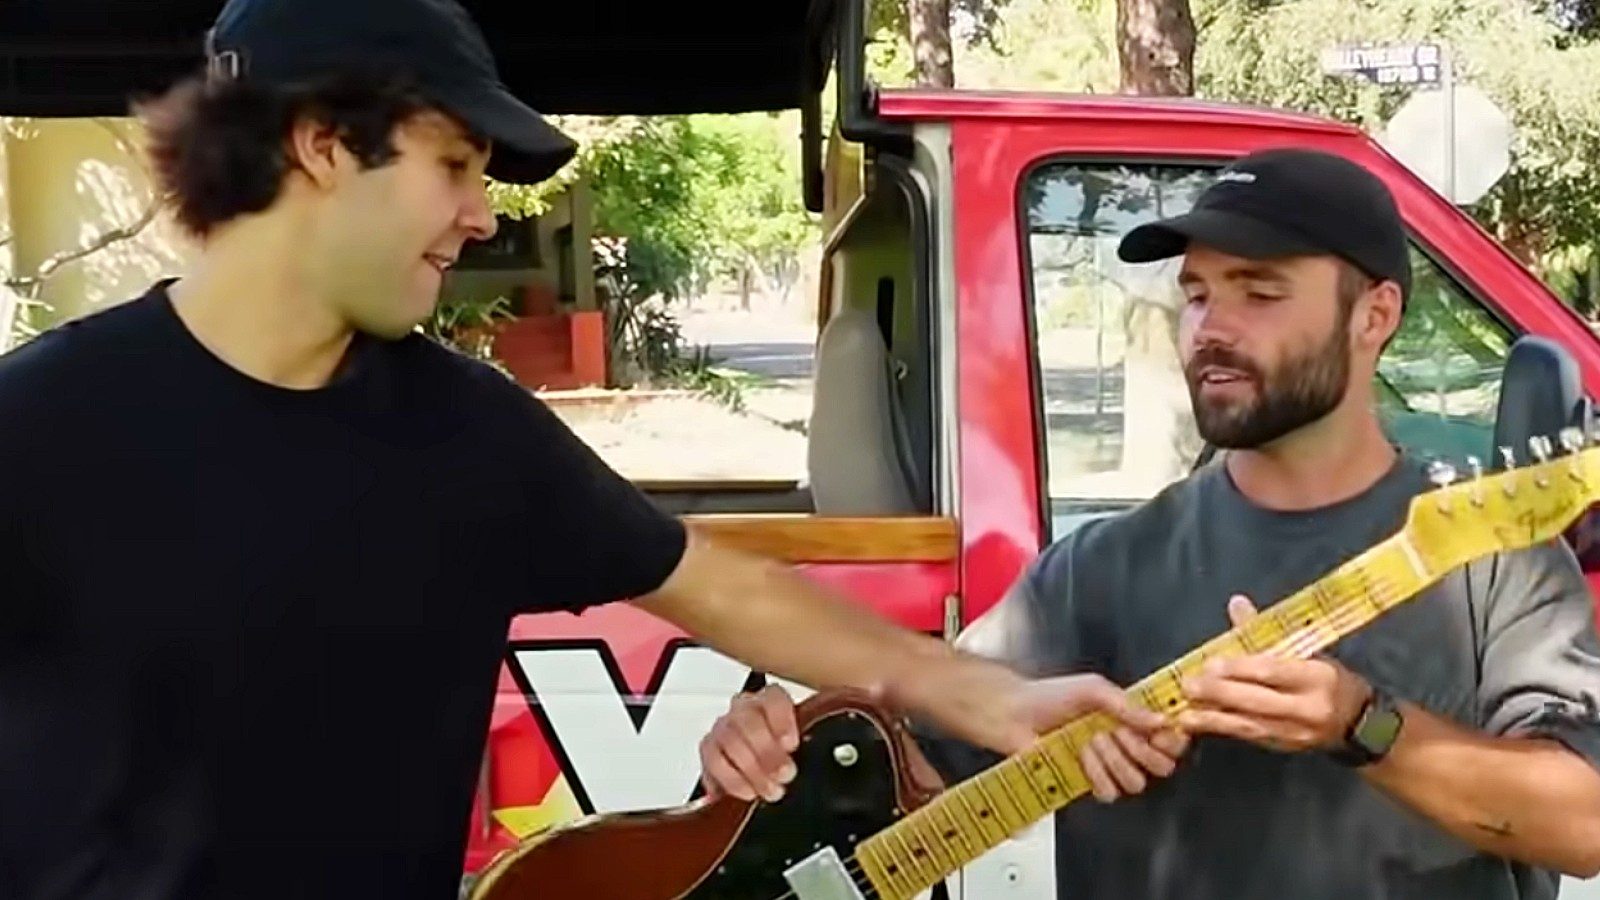 David Dobrik trades car for guitar with swapping YouTuber